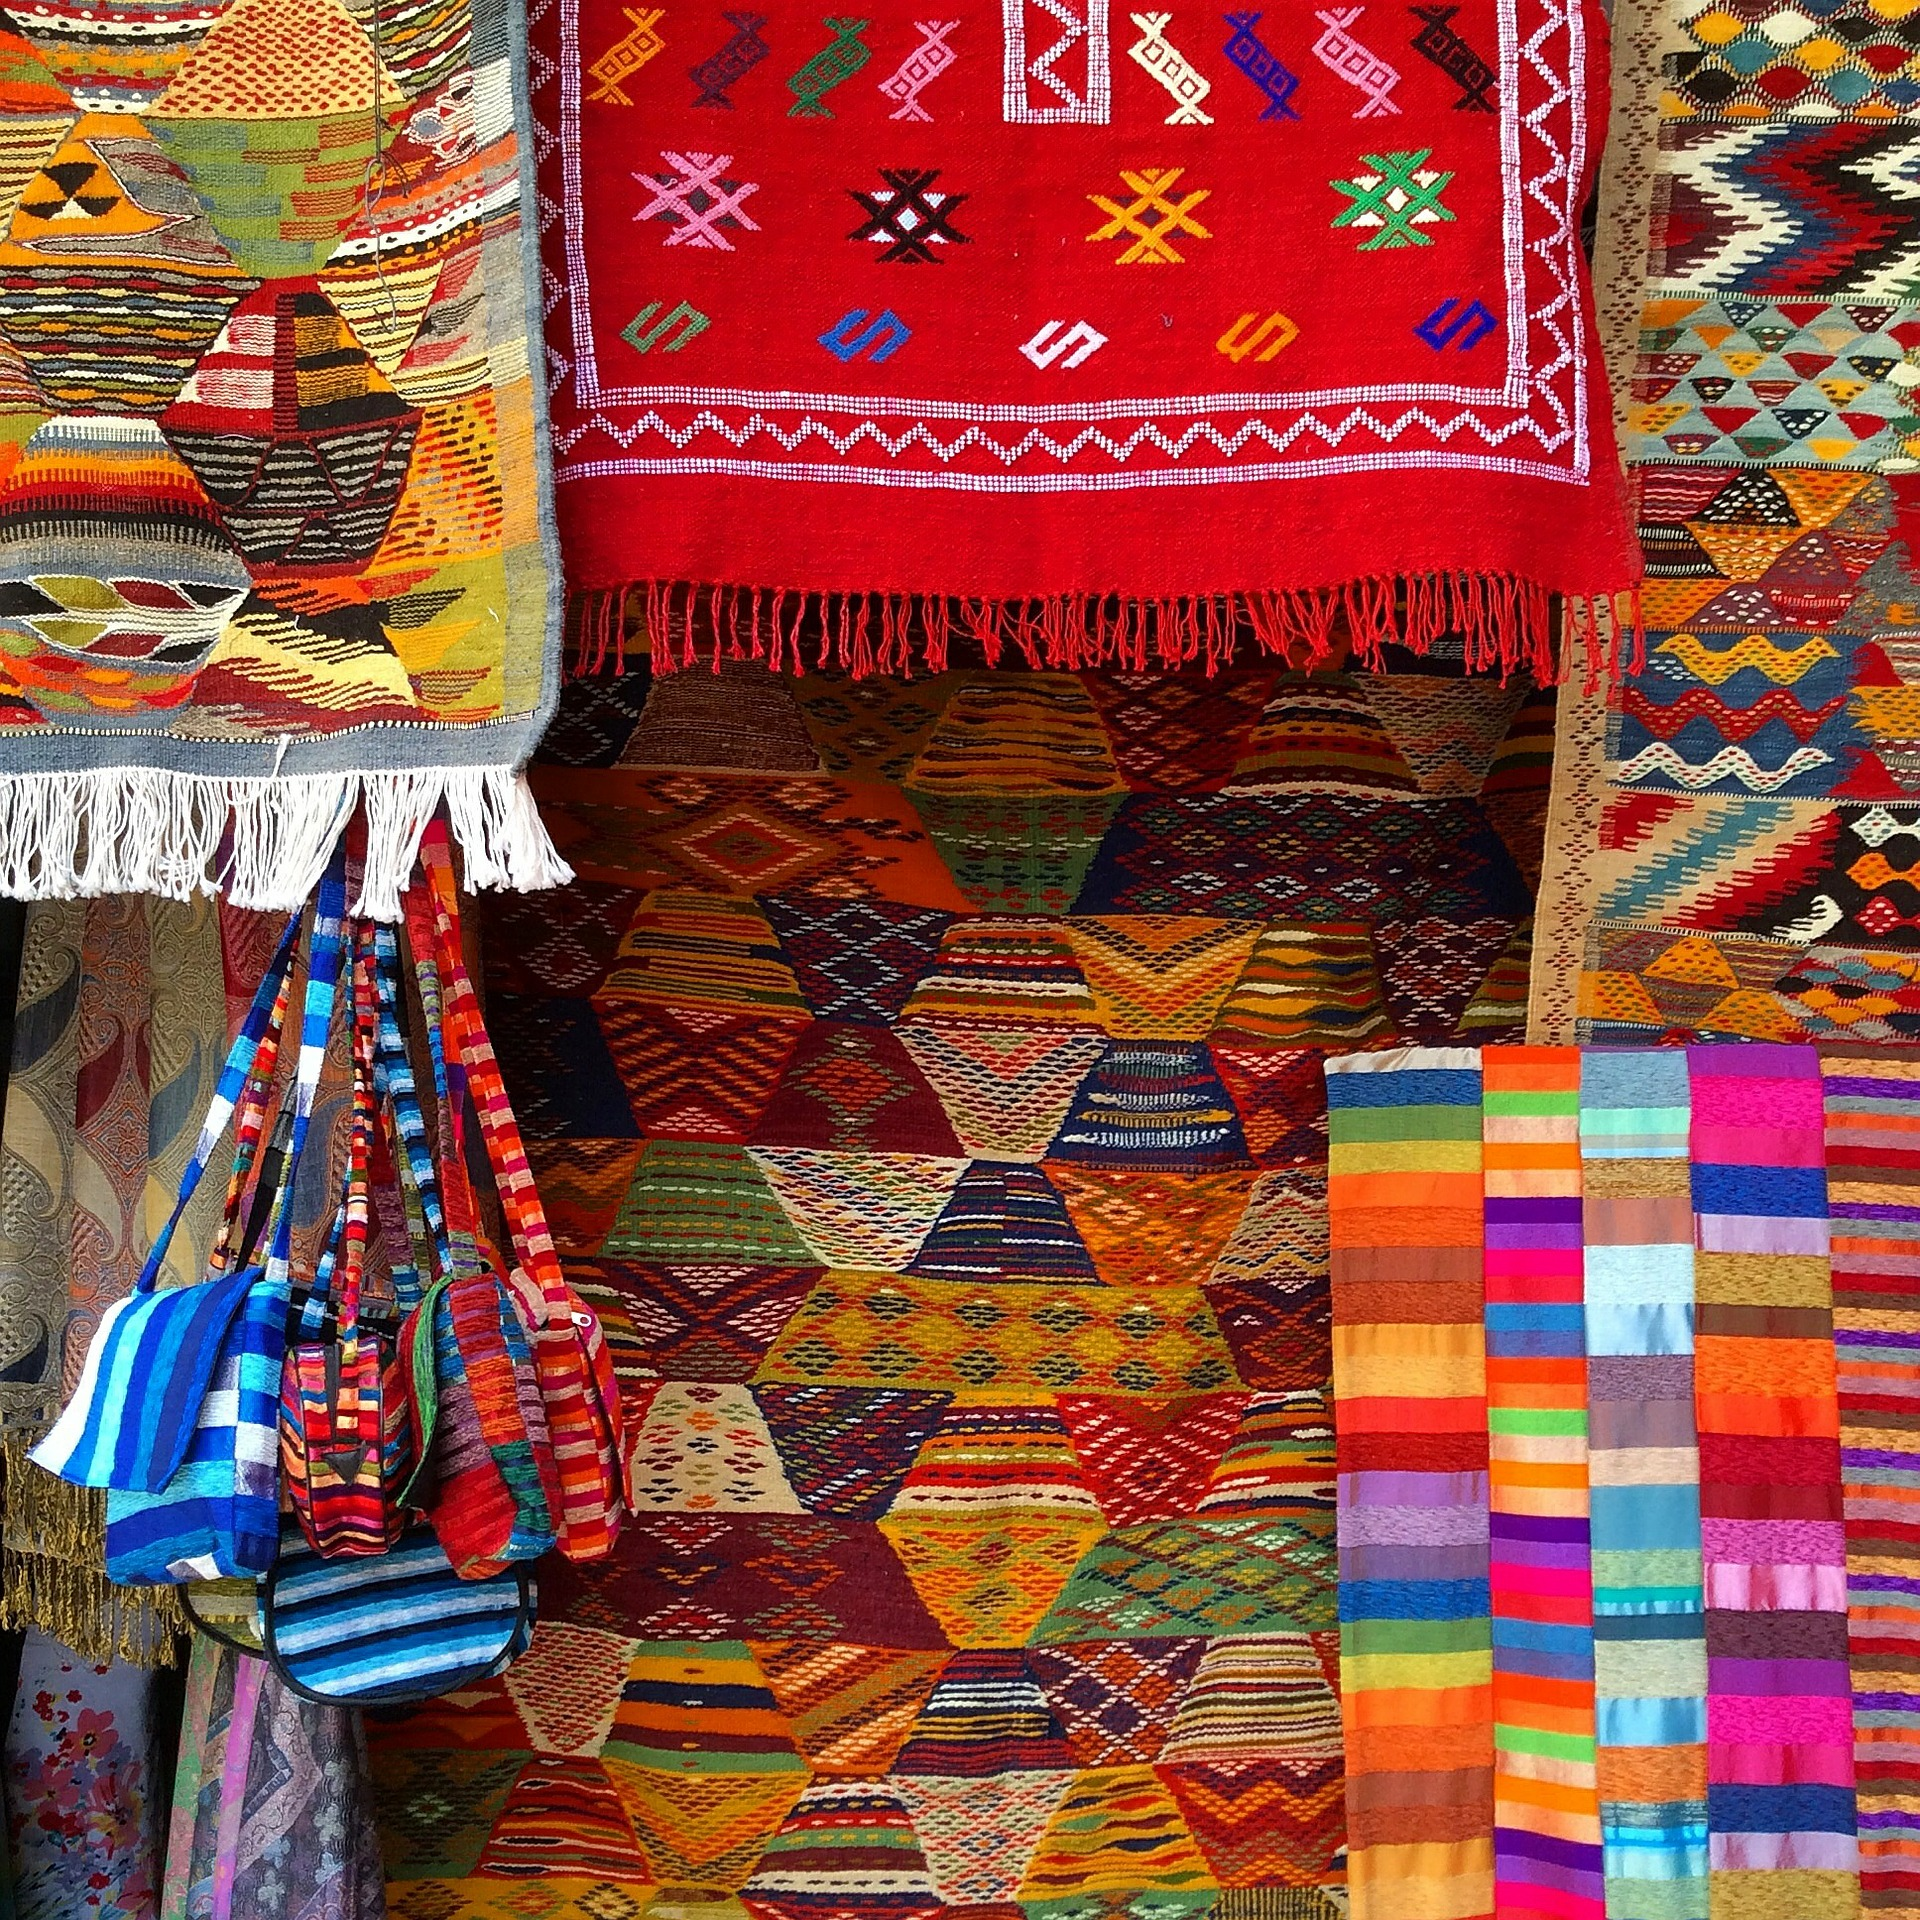 colorful Moroccan carpets hanging in front of a shop.